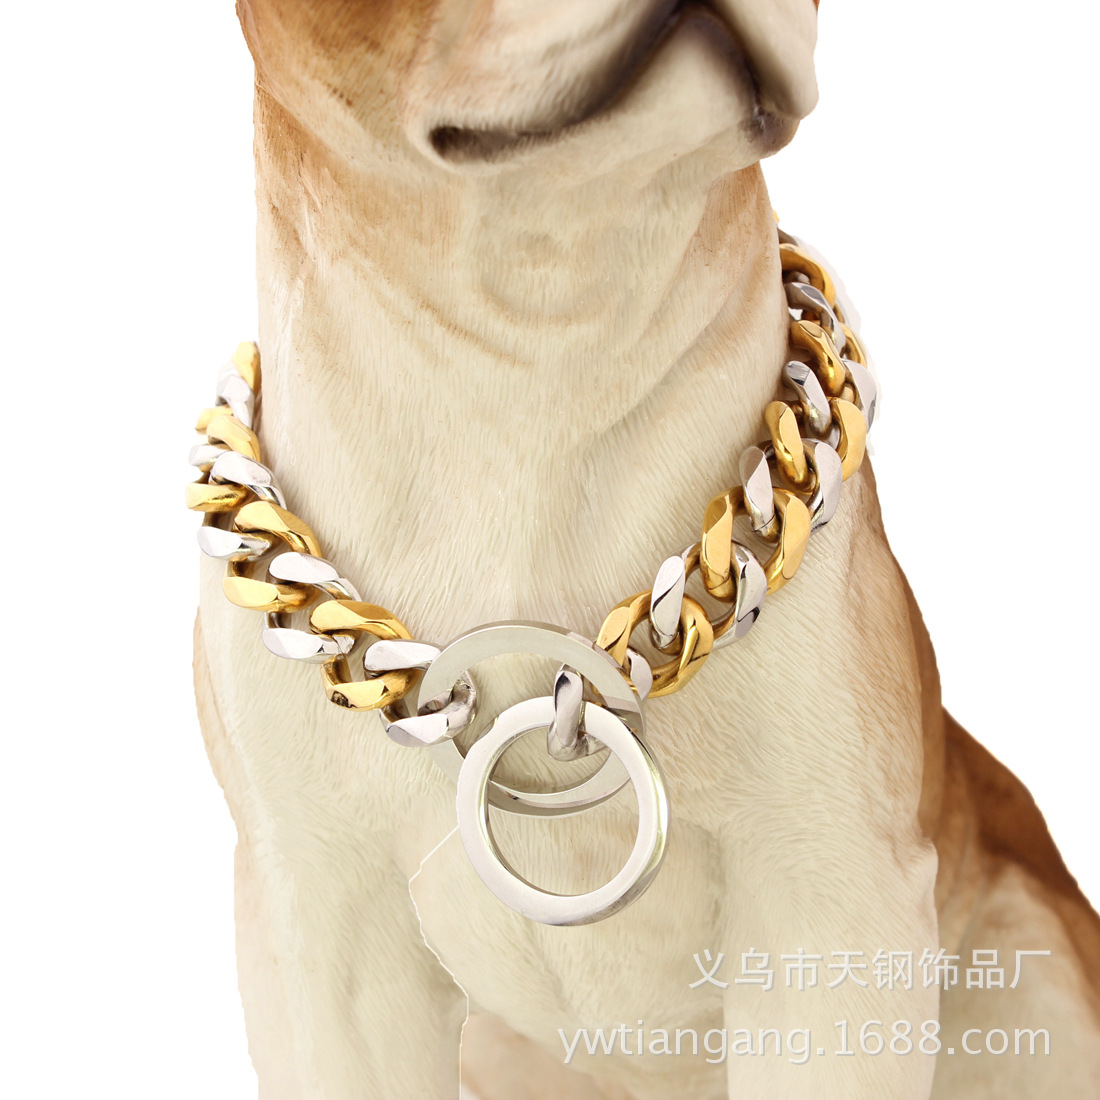 15 Size New Style Golden Retriever Husky Pet Dog Titanium Steel Stainless Steel Between Gold Double Color P Pendant Polishing To